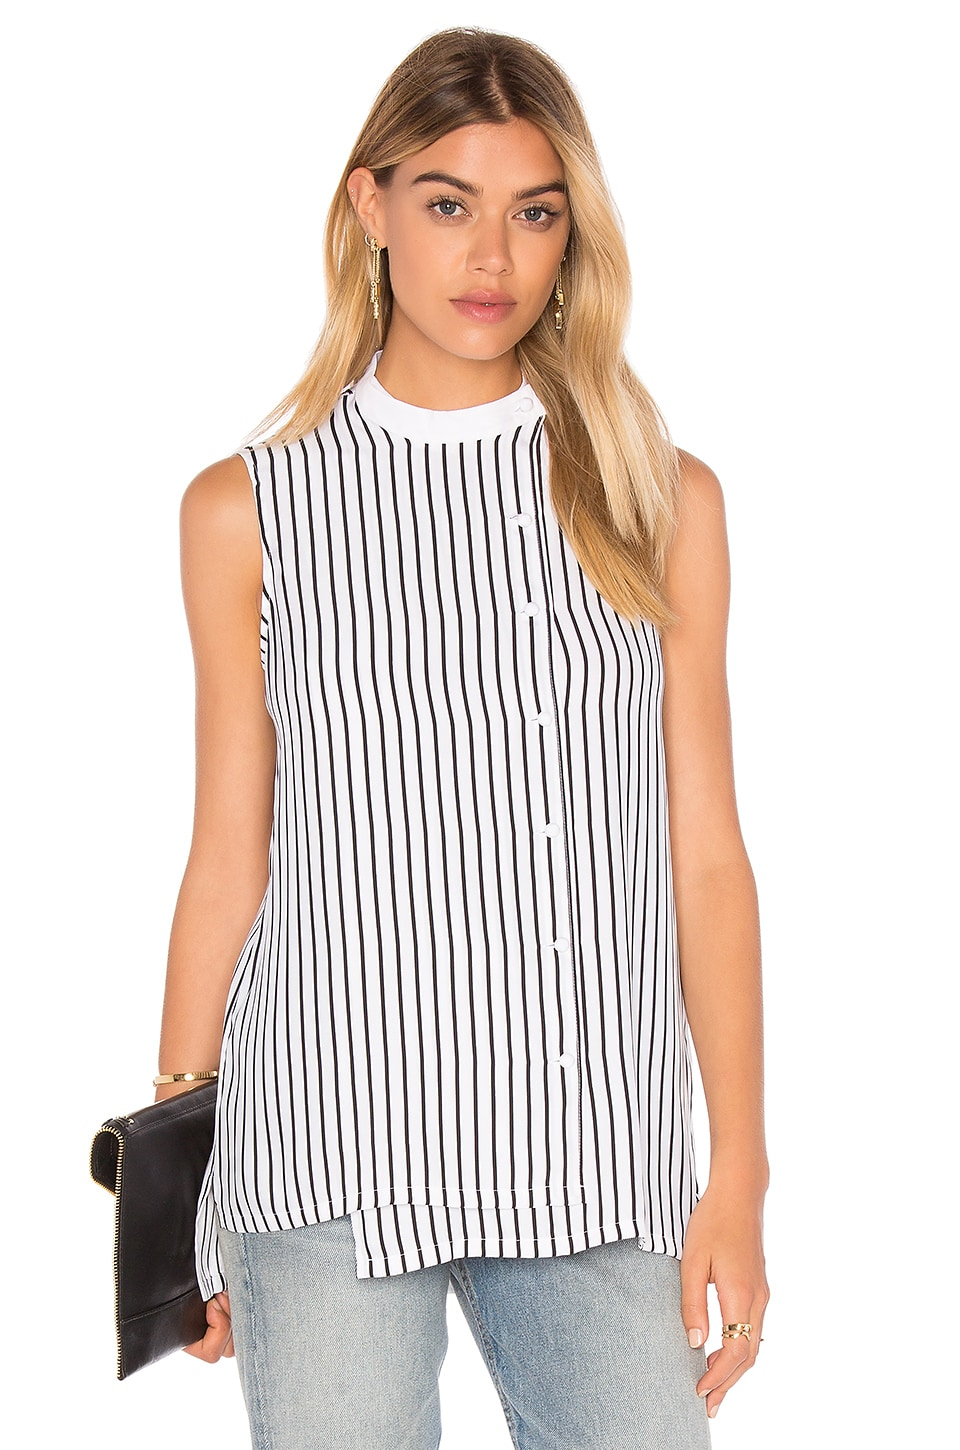 FRAME Denim Le Sleeveless Blouse in Blanc & Noir Classic Stripe